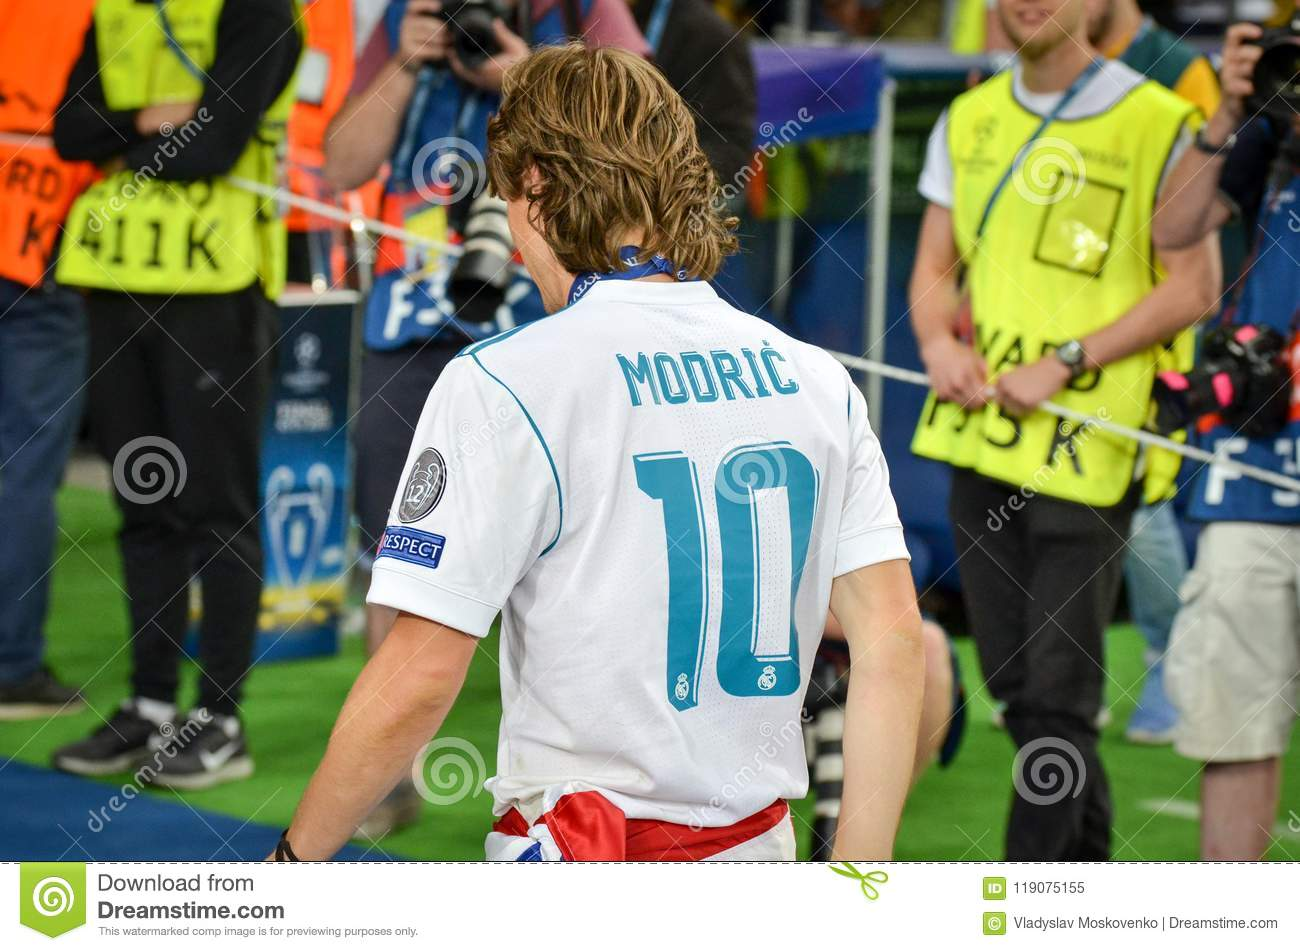 ce42da2e875 KYIV, UKRAINE - MAY 26, 2018: Luka Modric of Real Madrid celebrate the  victory in the final of the UEFA Champions League 2018 in Kiev match  between Real ...